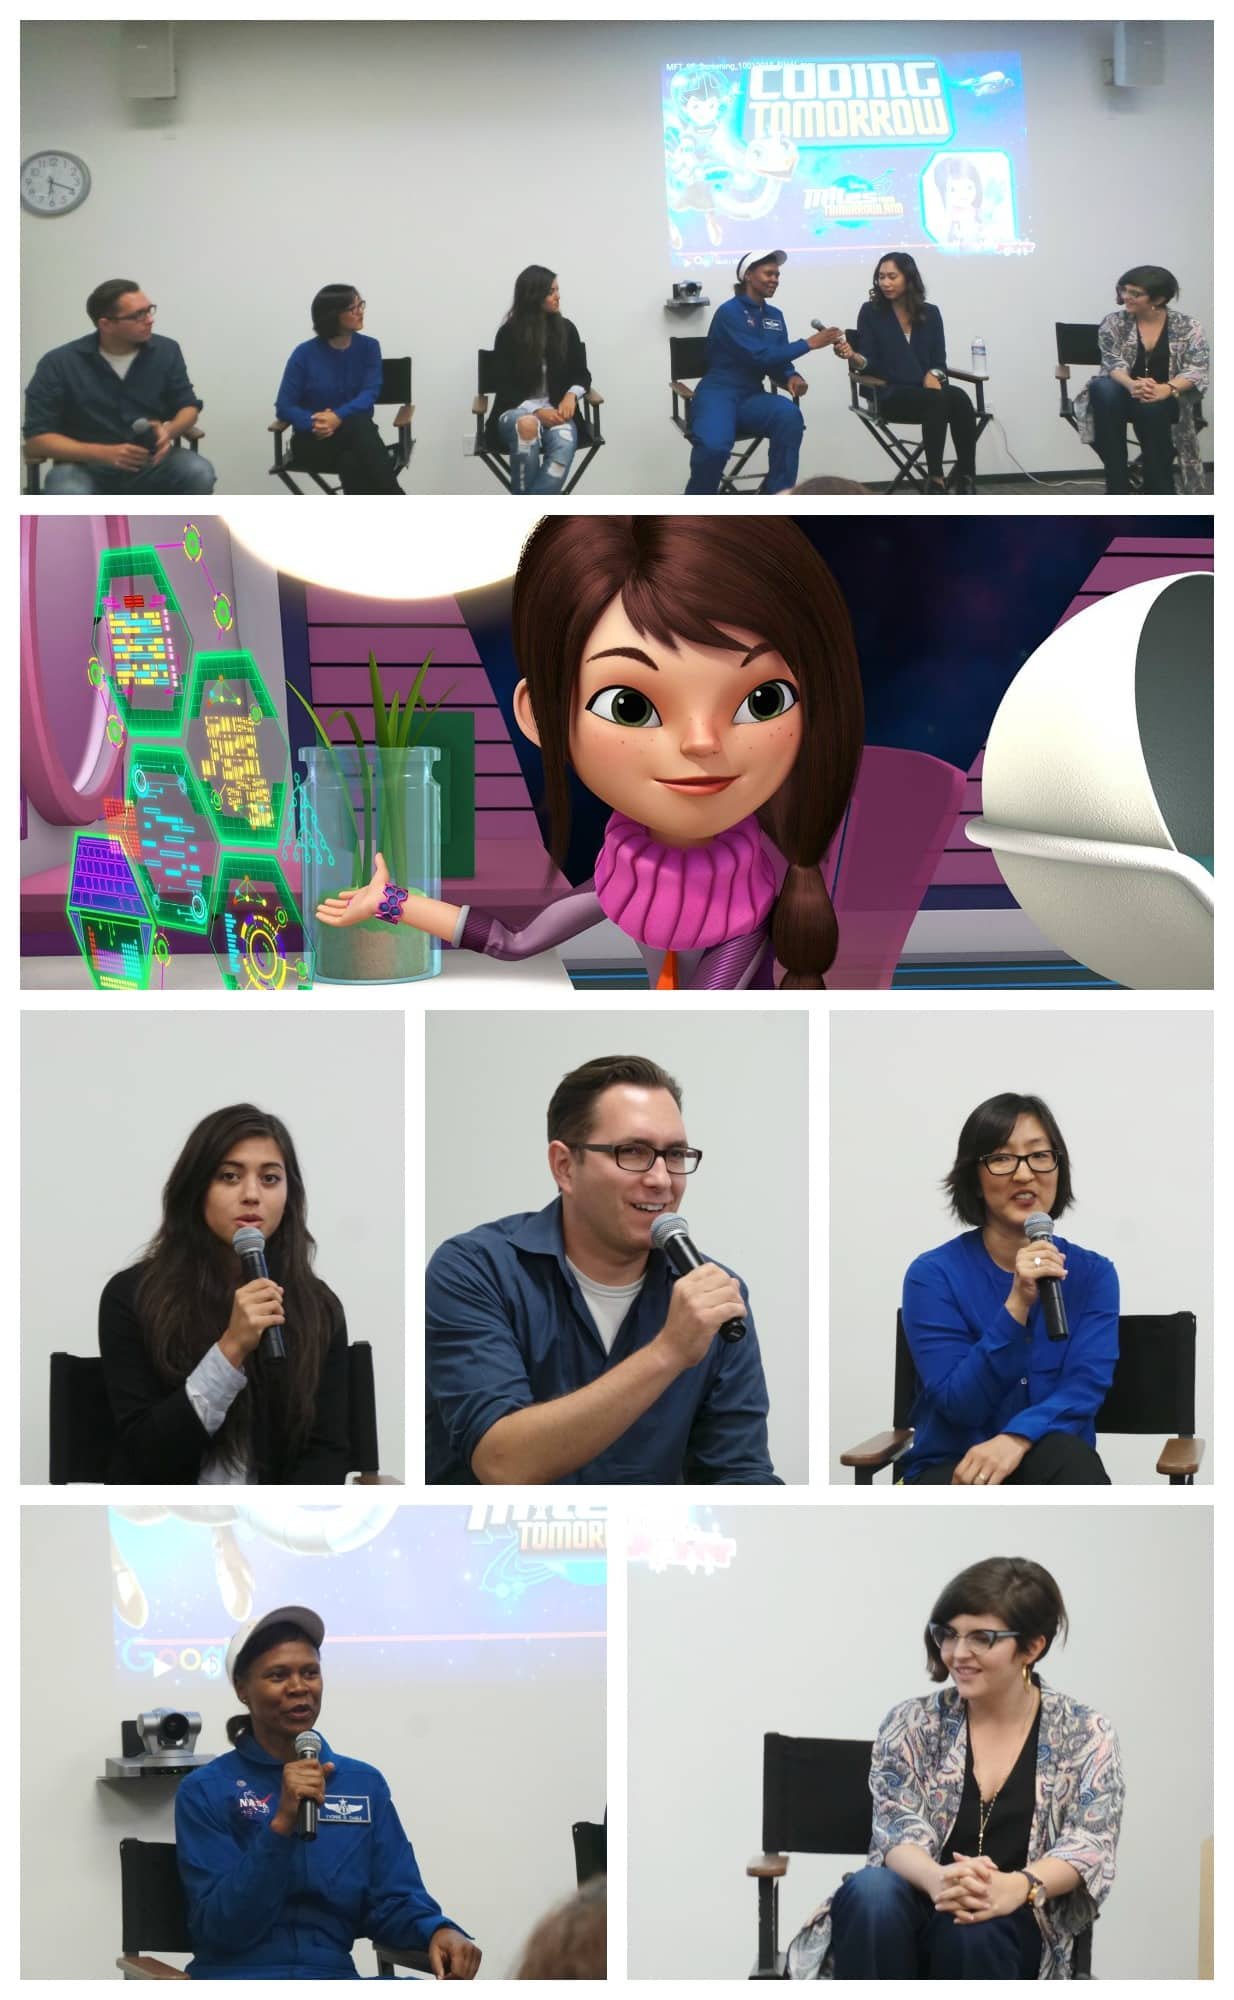 Miles from Tomorrowland and women in tech pin